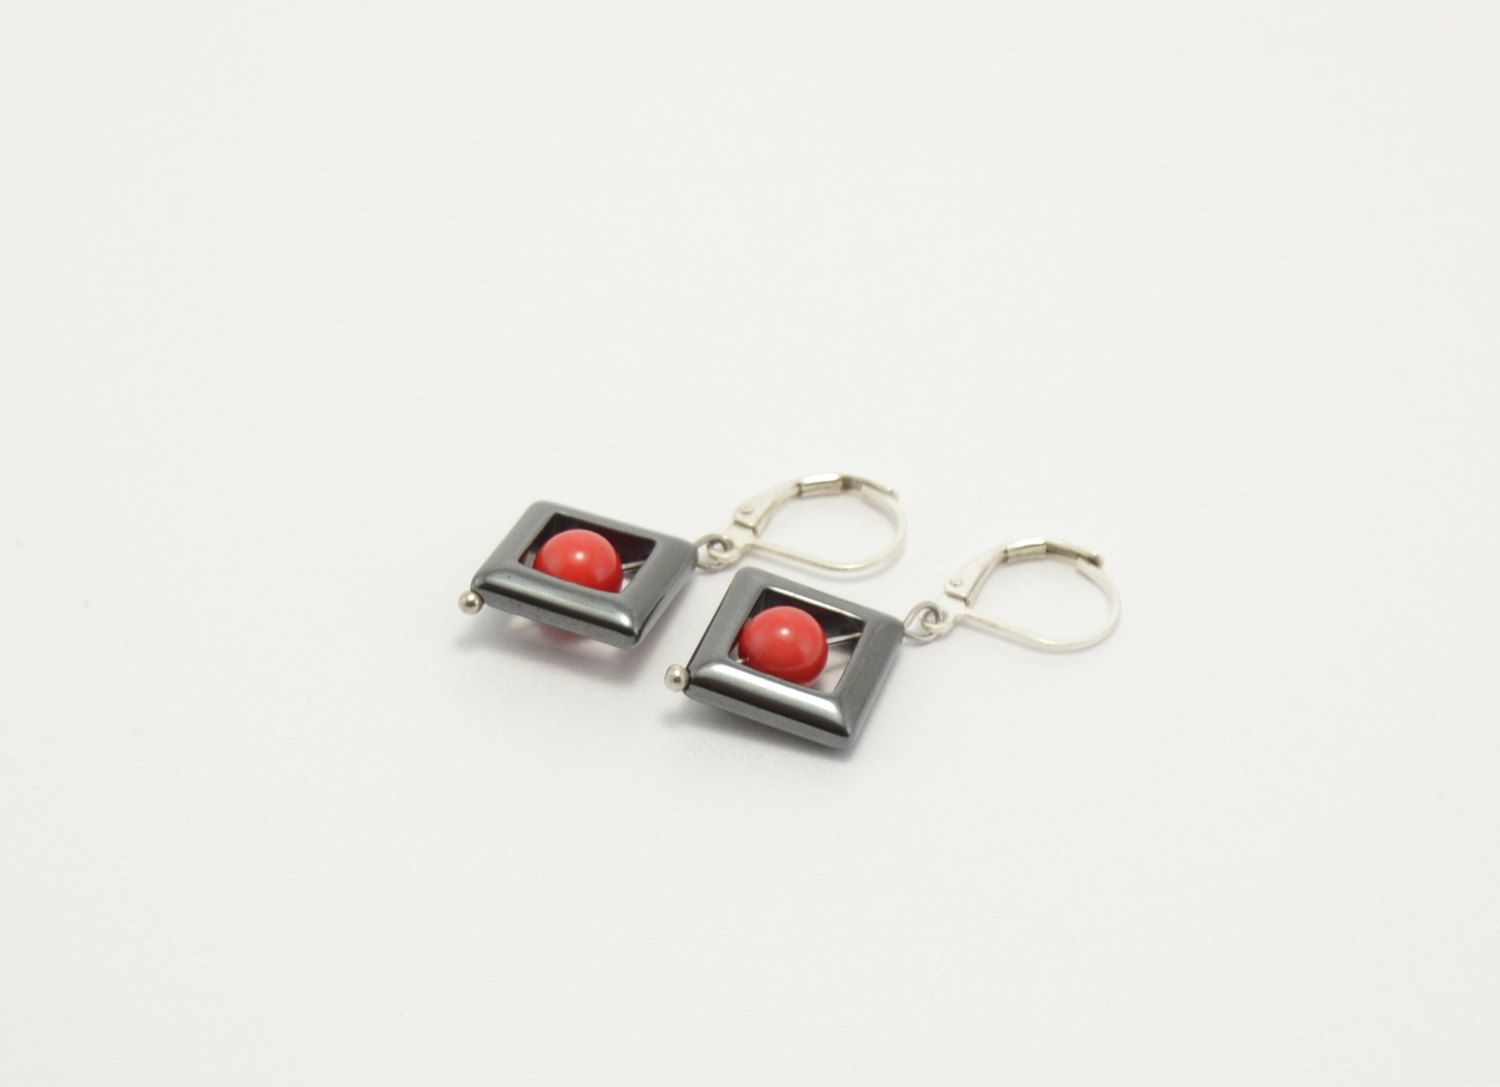 Hematite earrings, red coral earrings, stone earrings, beaded earrings, natural stone earrings, semi-precious stones, red black earrings by PastimeArt on Etsy